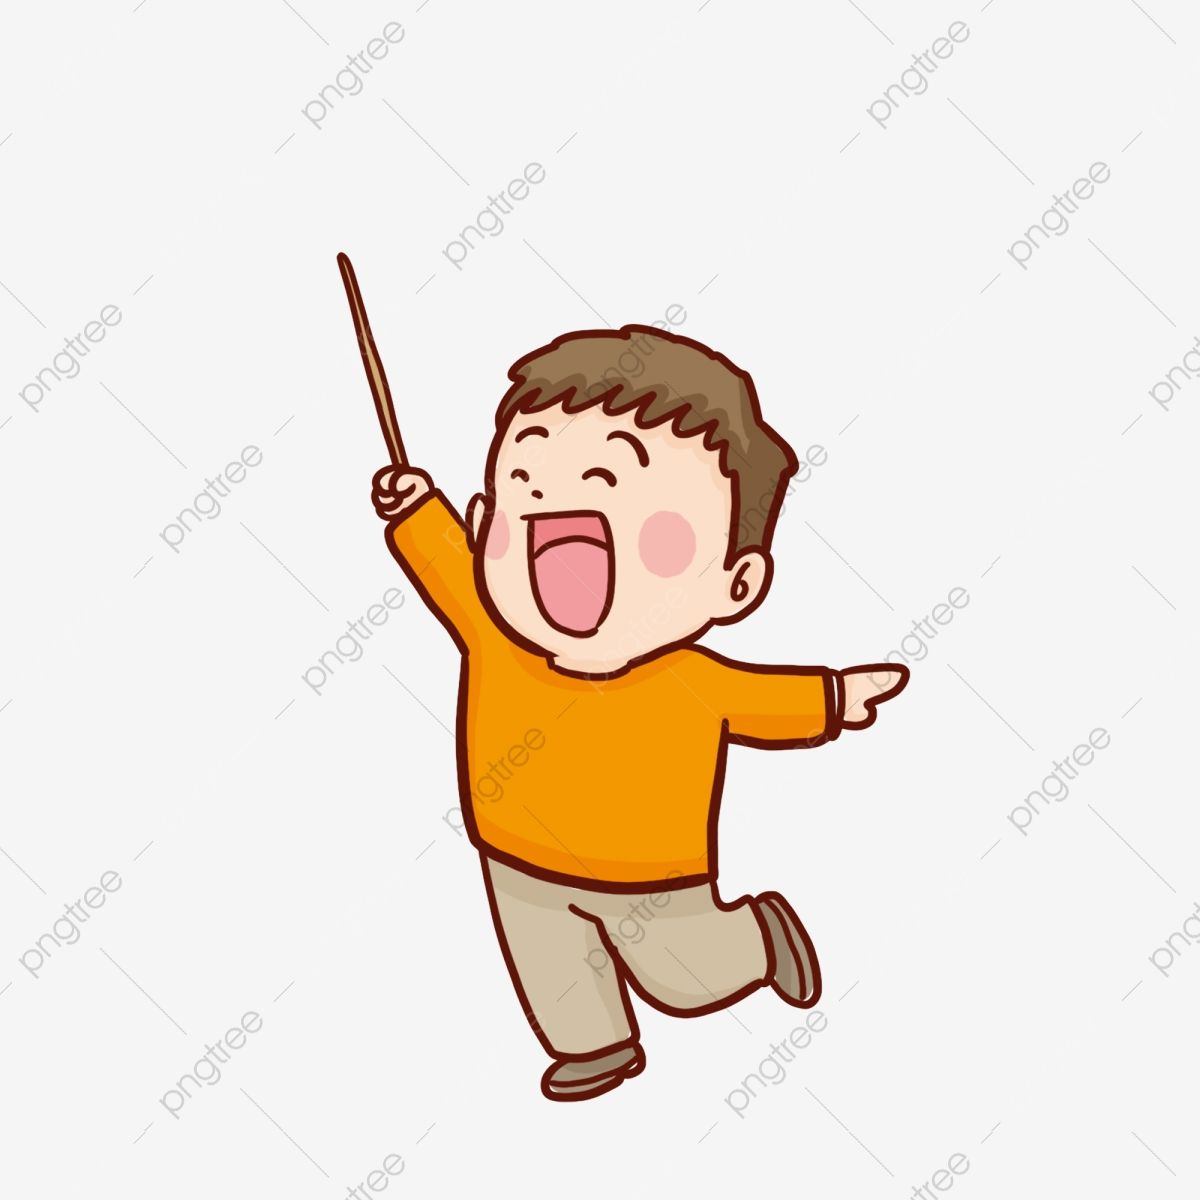 Cartoon Cute Kid Cartoon Design With Ruler Cartoon Cute Little Boy Png Transparent Clipart Image And Psd File For Free Download Cartoon Kids Cartoon Design Boy Cartoon Characters